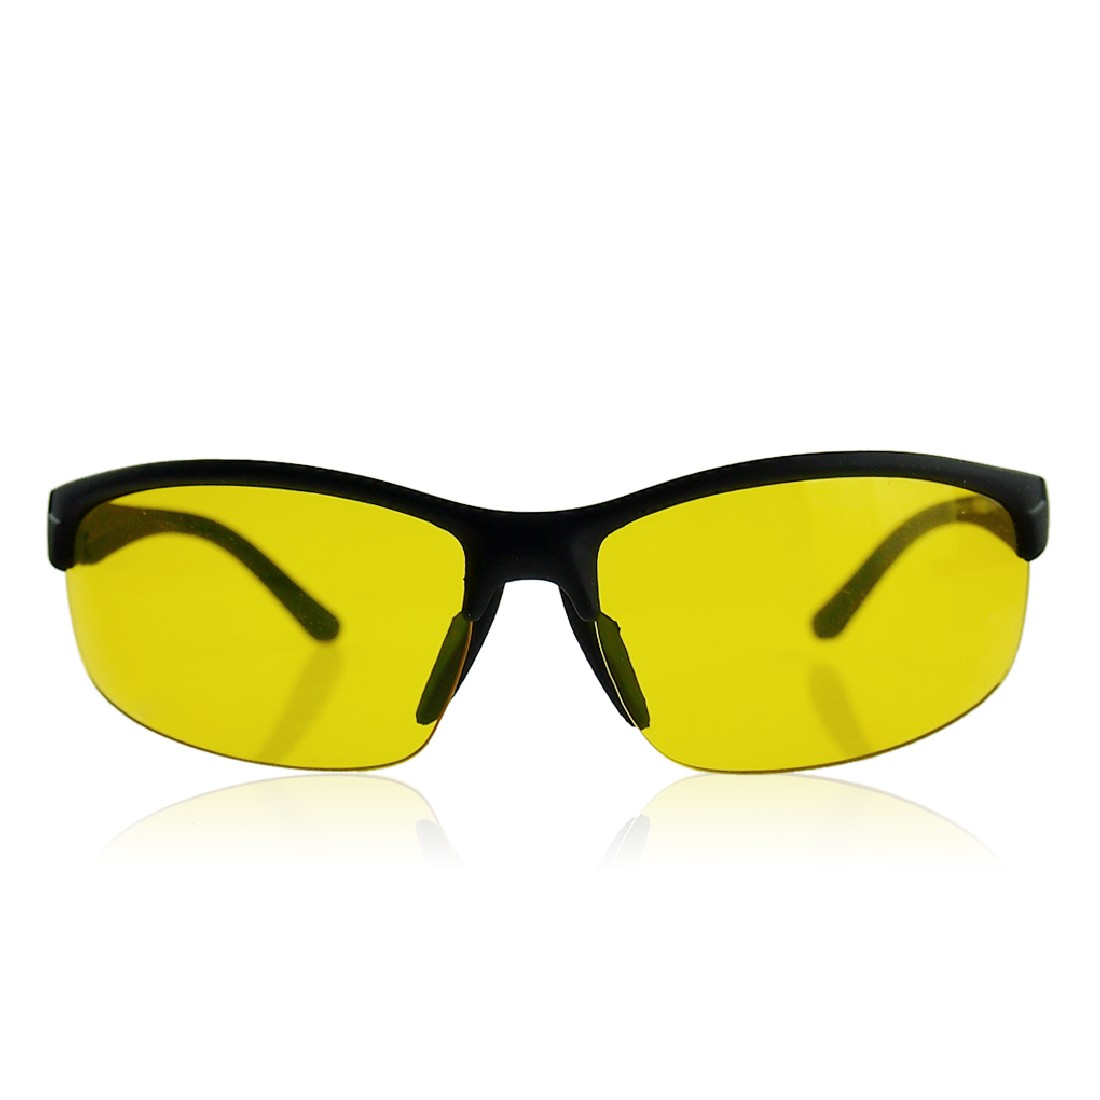 Hot Sell High Definition Night Vision Glasses Driving Polarized Sunglasses Yellow Lens Classic UV400 Unisex Fishing Eyewear